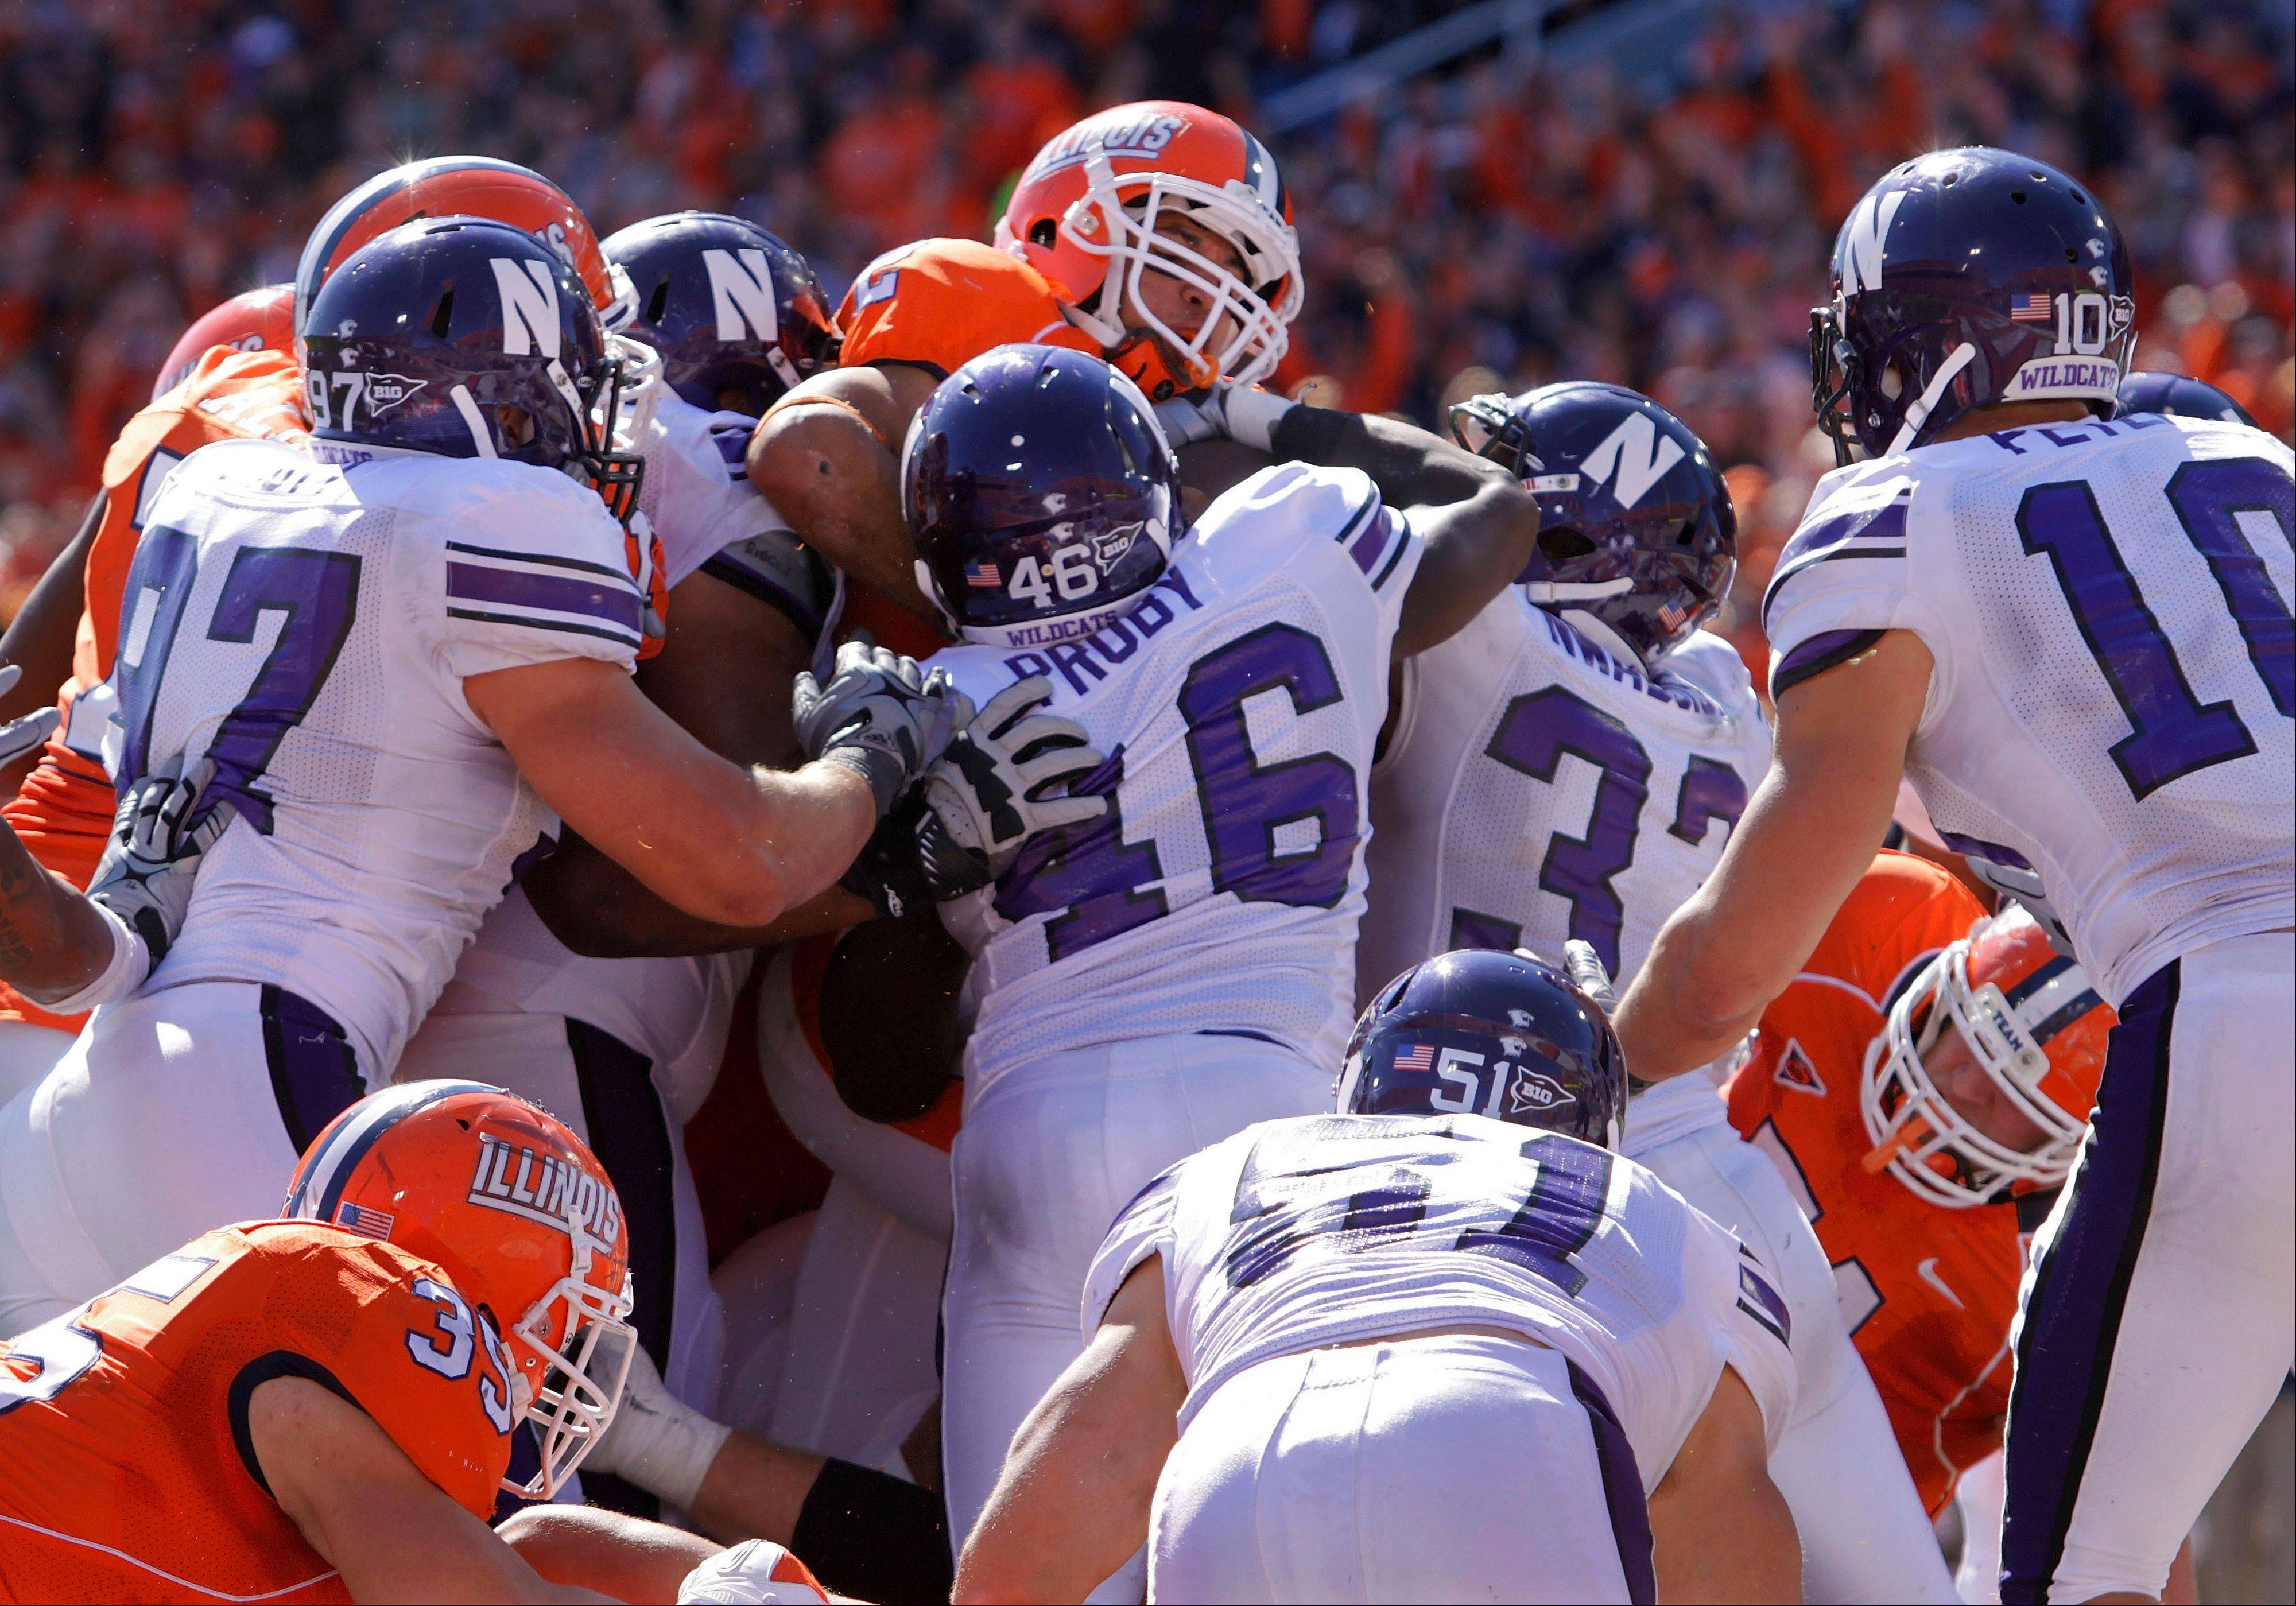 Illinois and Northwestern will be playing in the Big Ten East Division beginning in 2014, and conference officials released the 2015 football schedule on Monday, with both schools opening up conference play on Oct. 3, 2015, when Northwestern hosts Minnesota and the Illini host Nebraska.